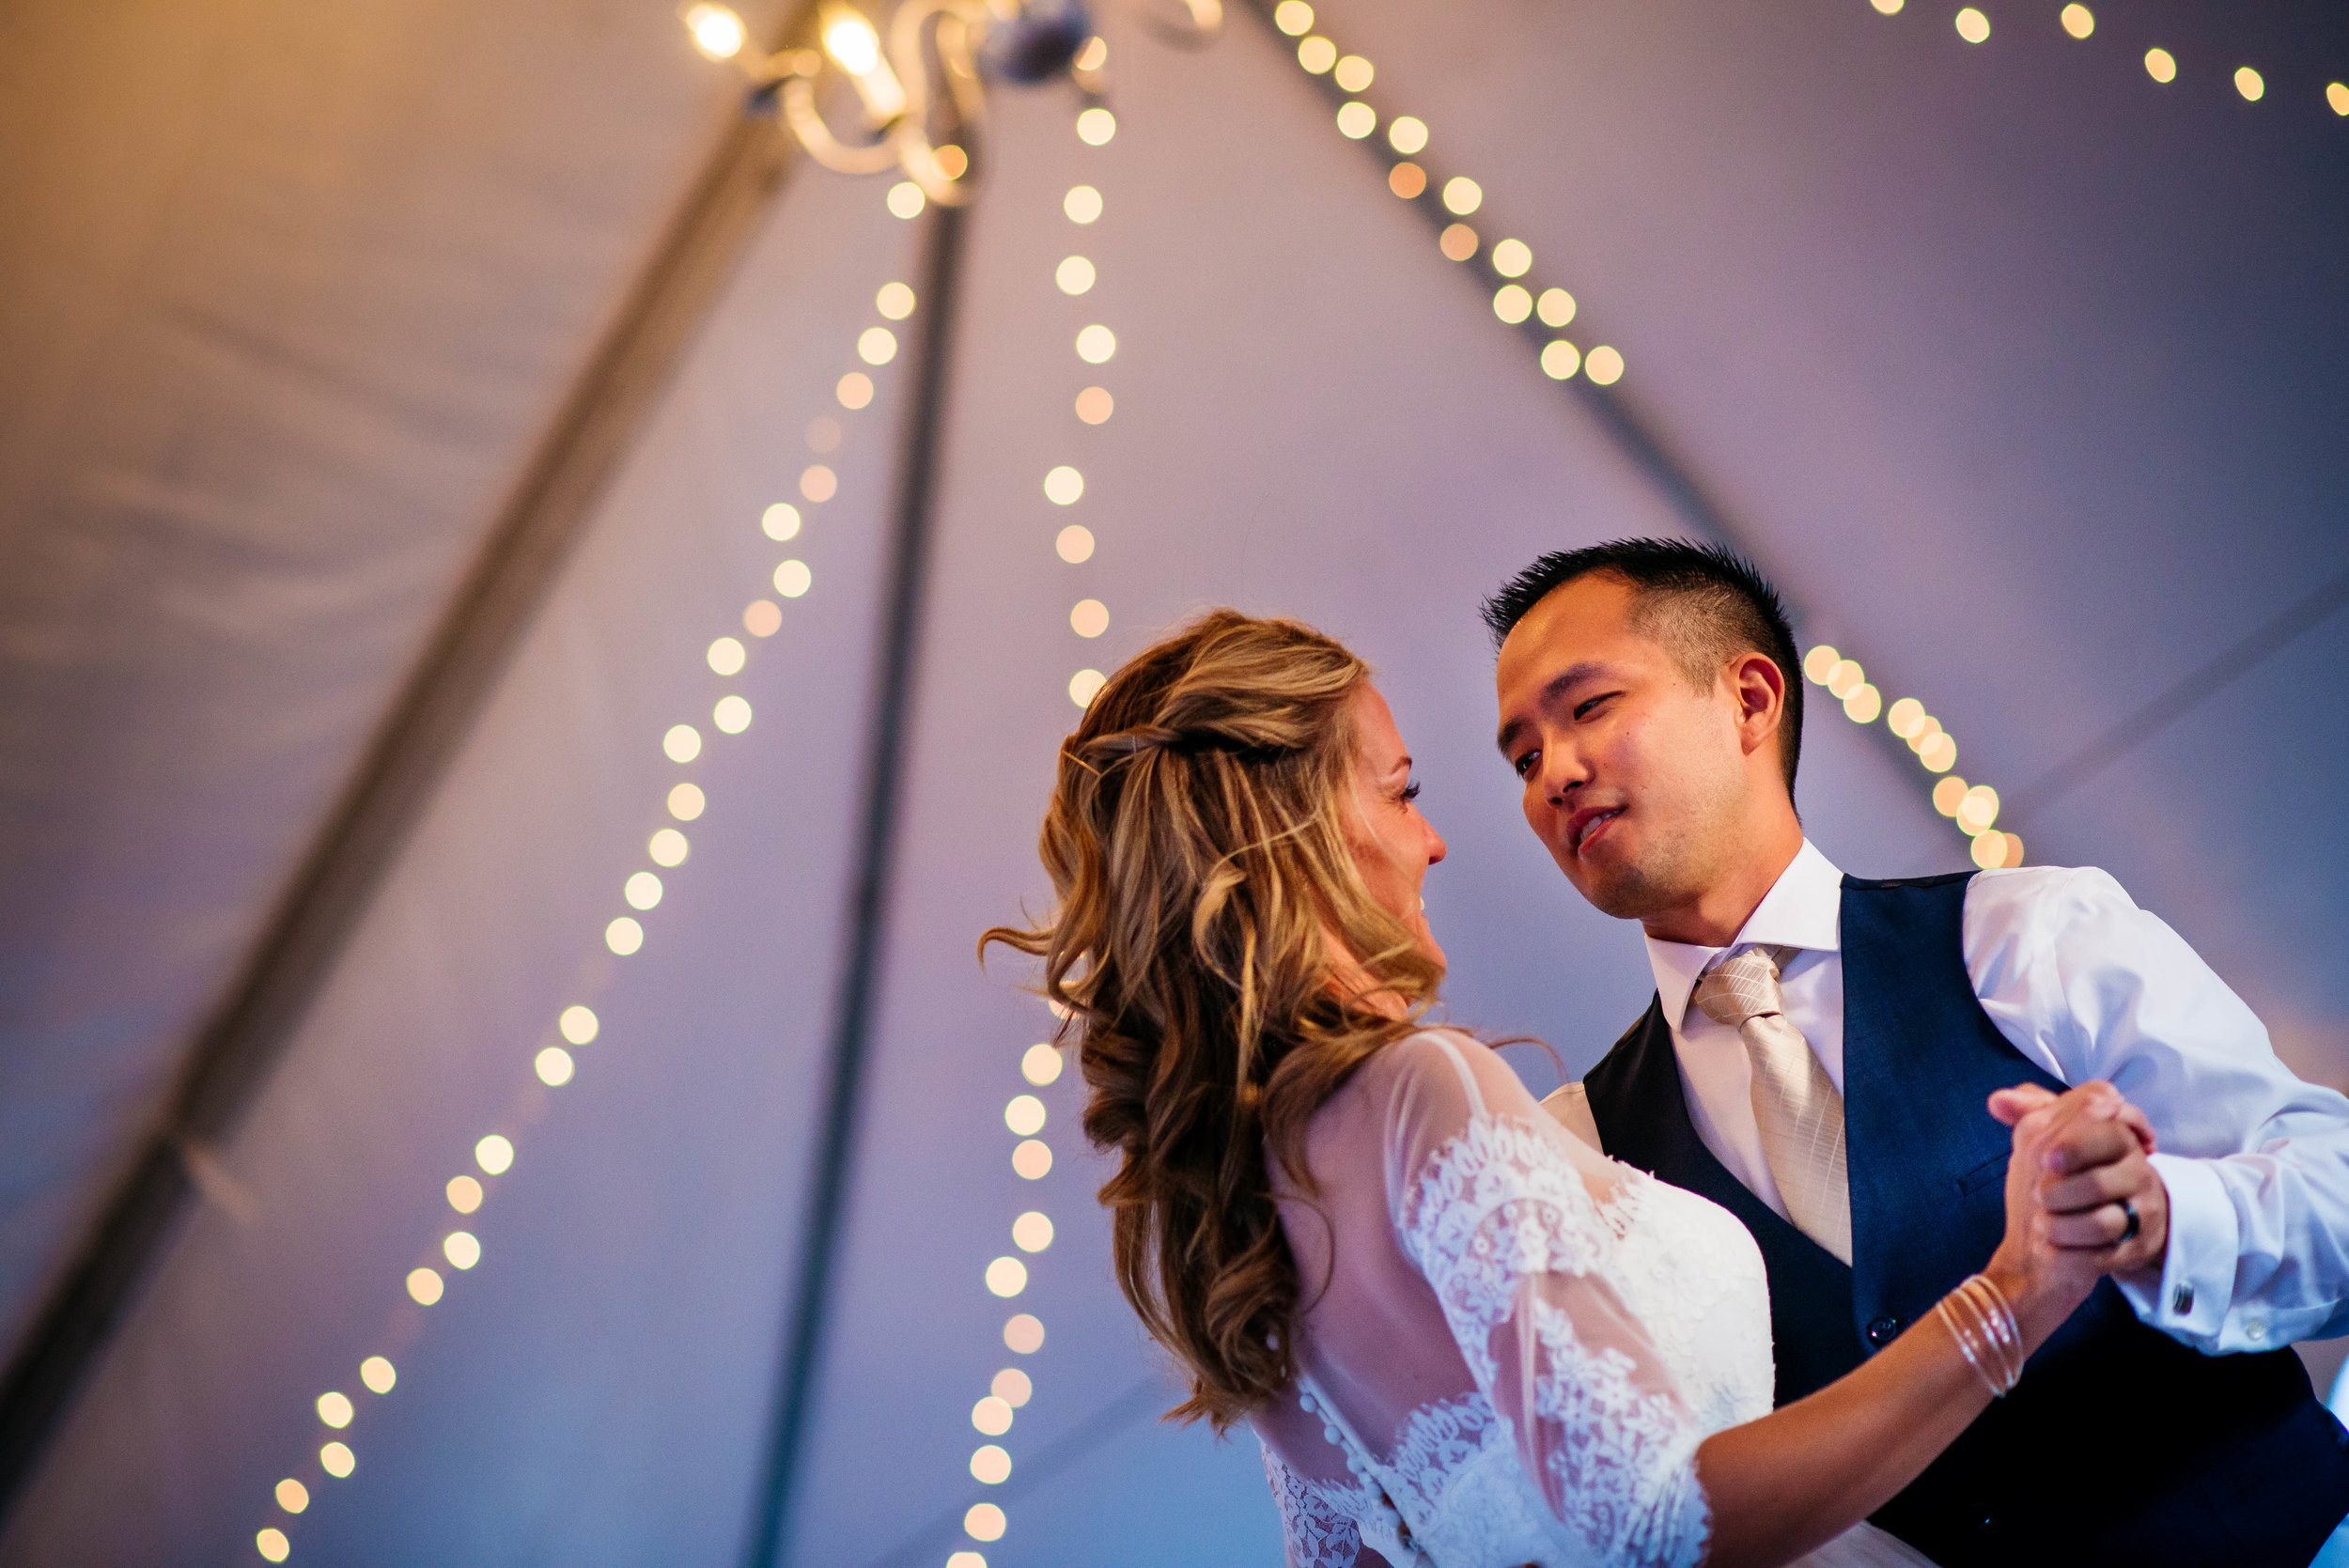 Extended Play Photography documentary wedding photography in Albuquerque, New Mexico. Capitan wedding reception first dance candid.